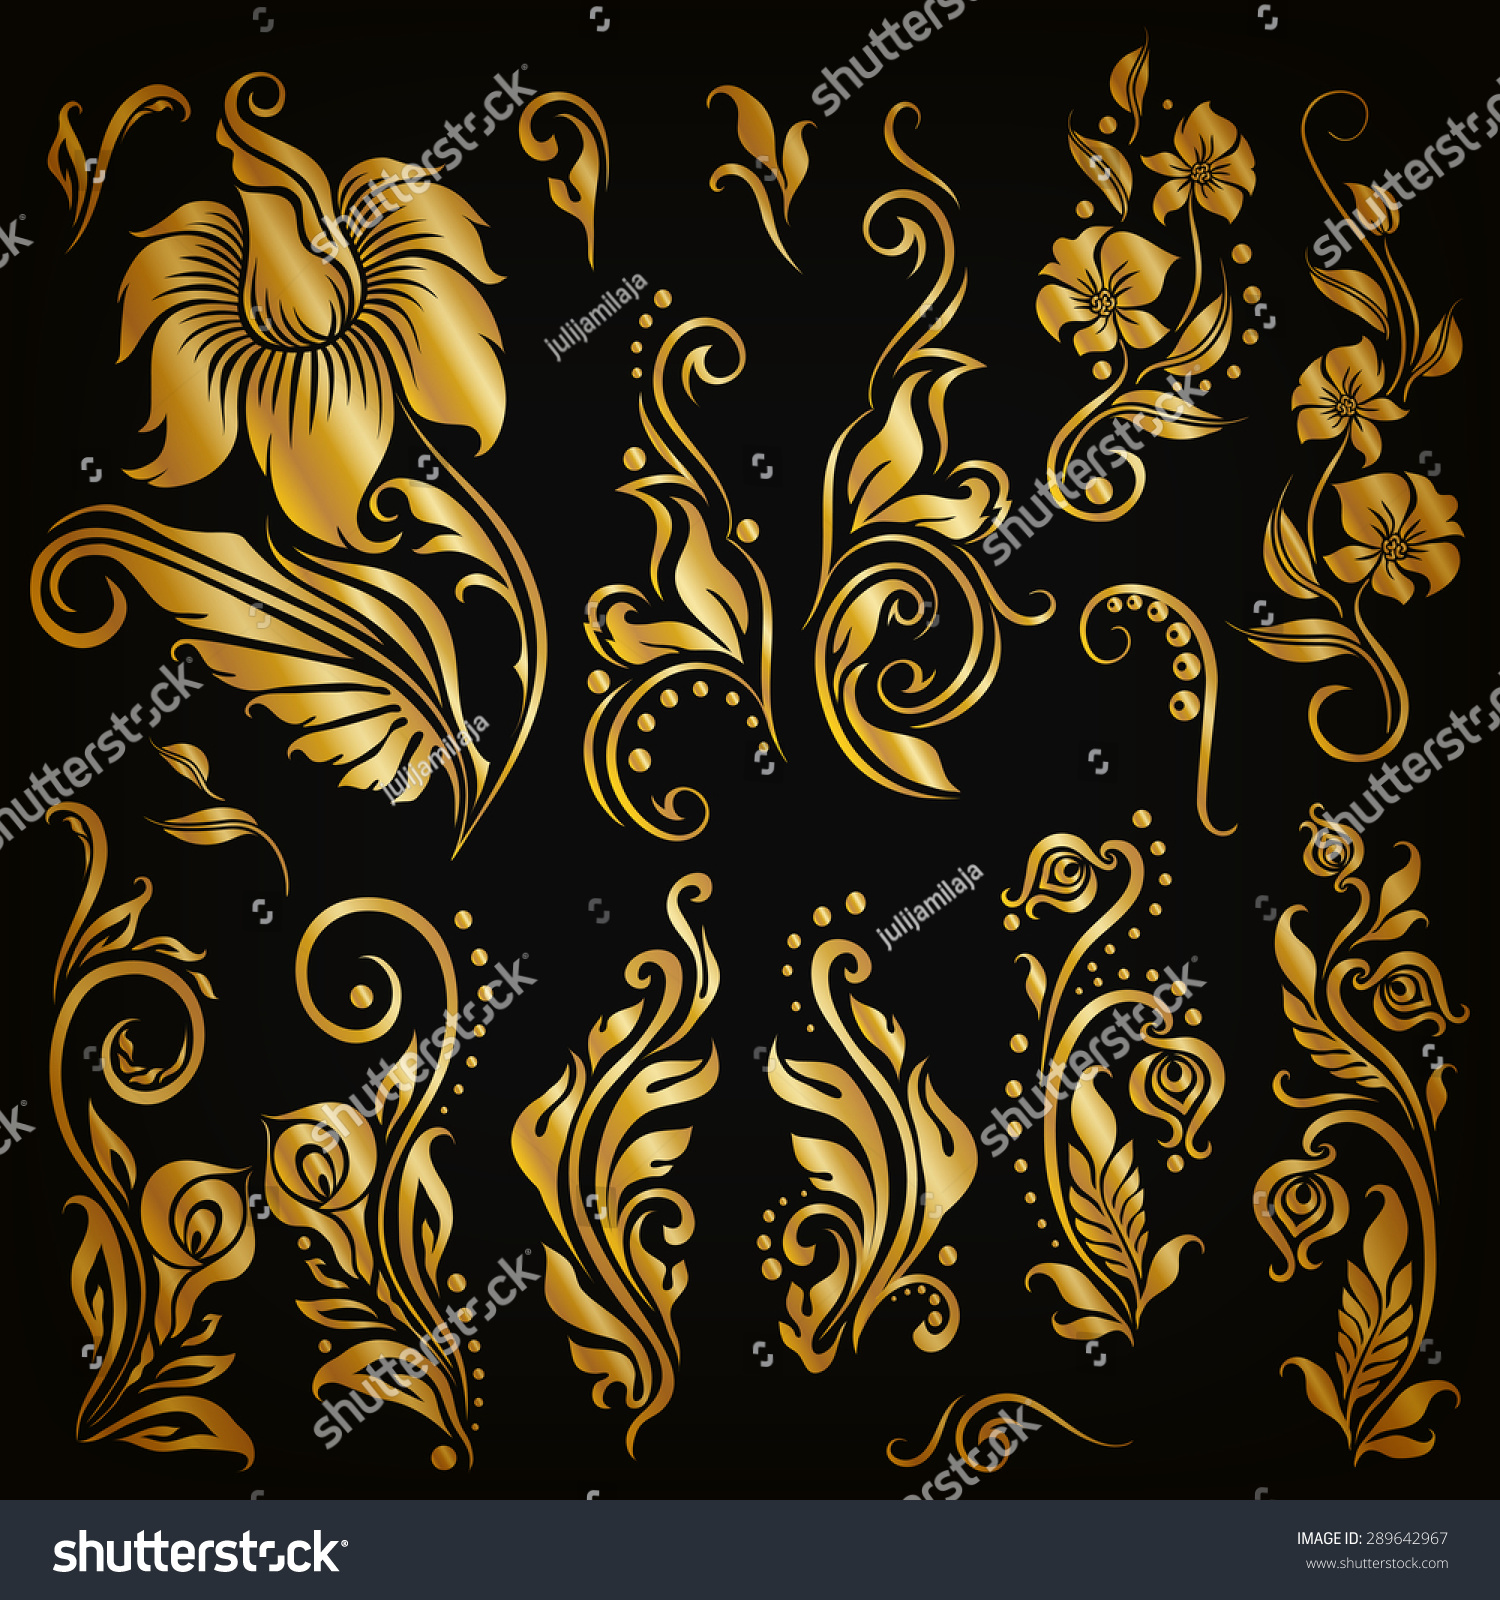 Decorative Black Flower Border Stock Image: Set Of Decorative Hand-Drawn Calligraphic Elements, Gold